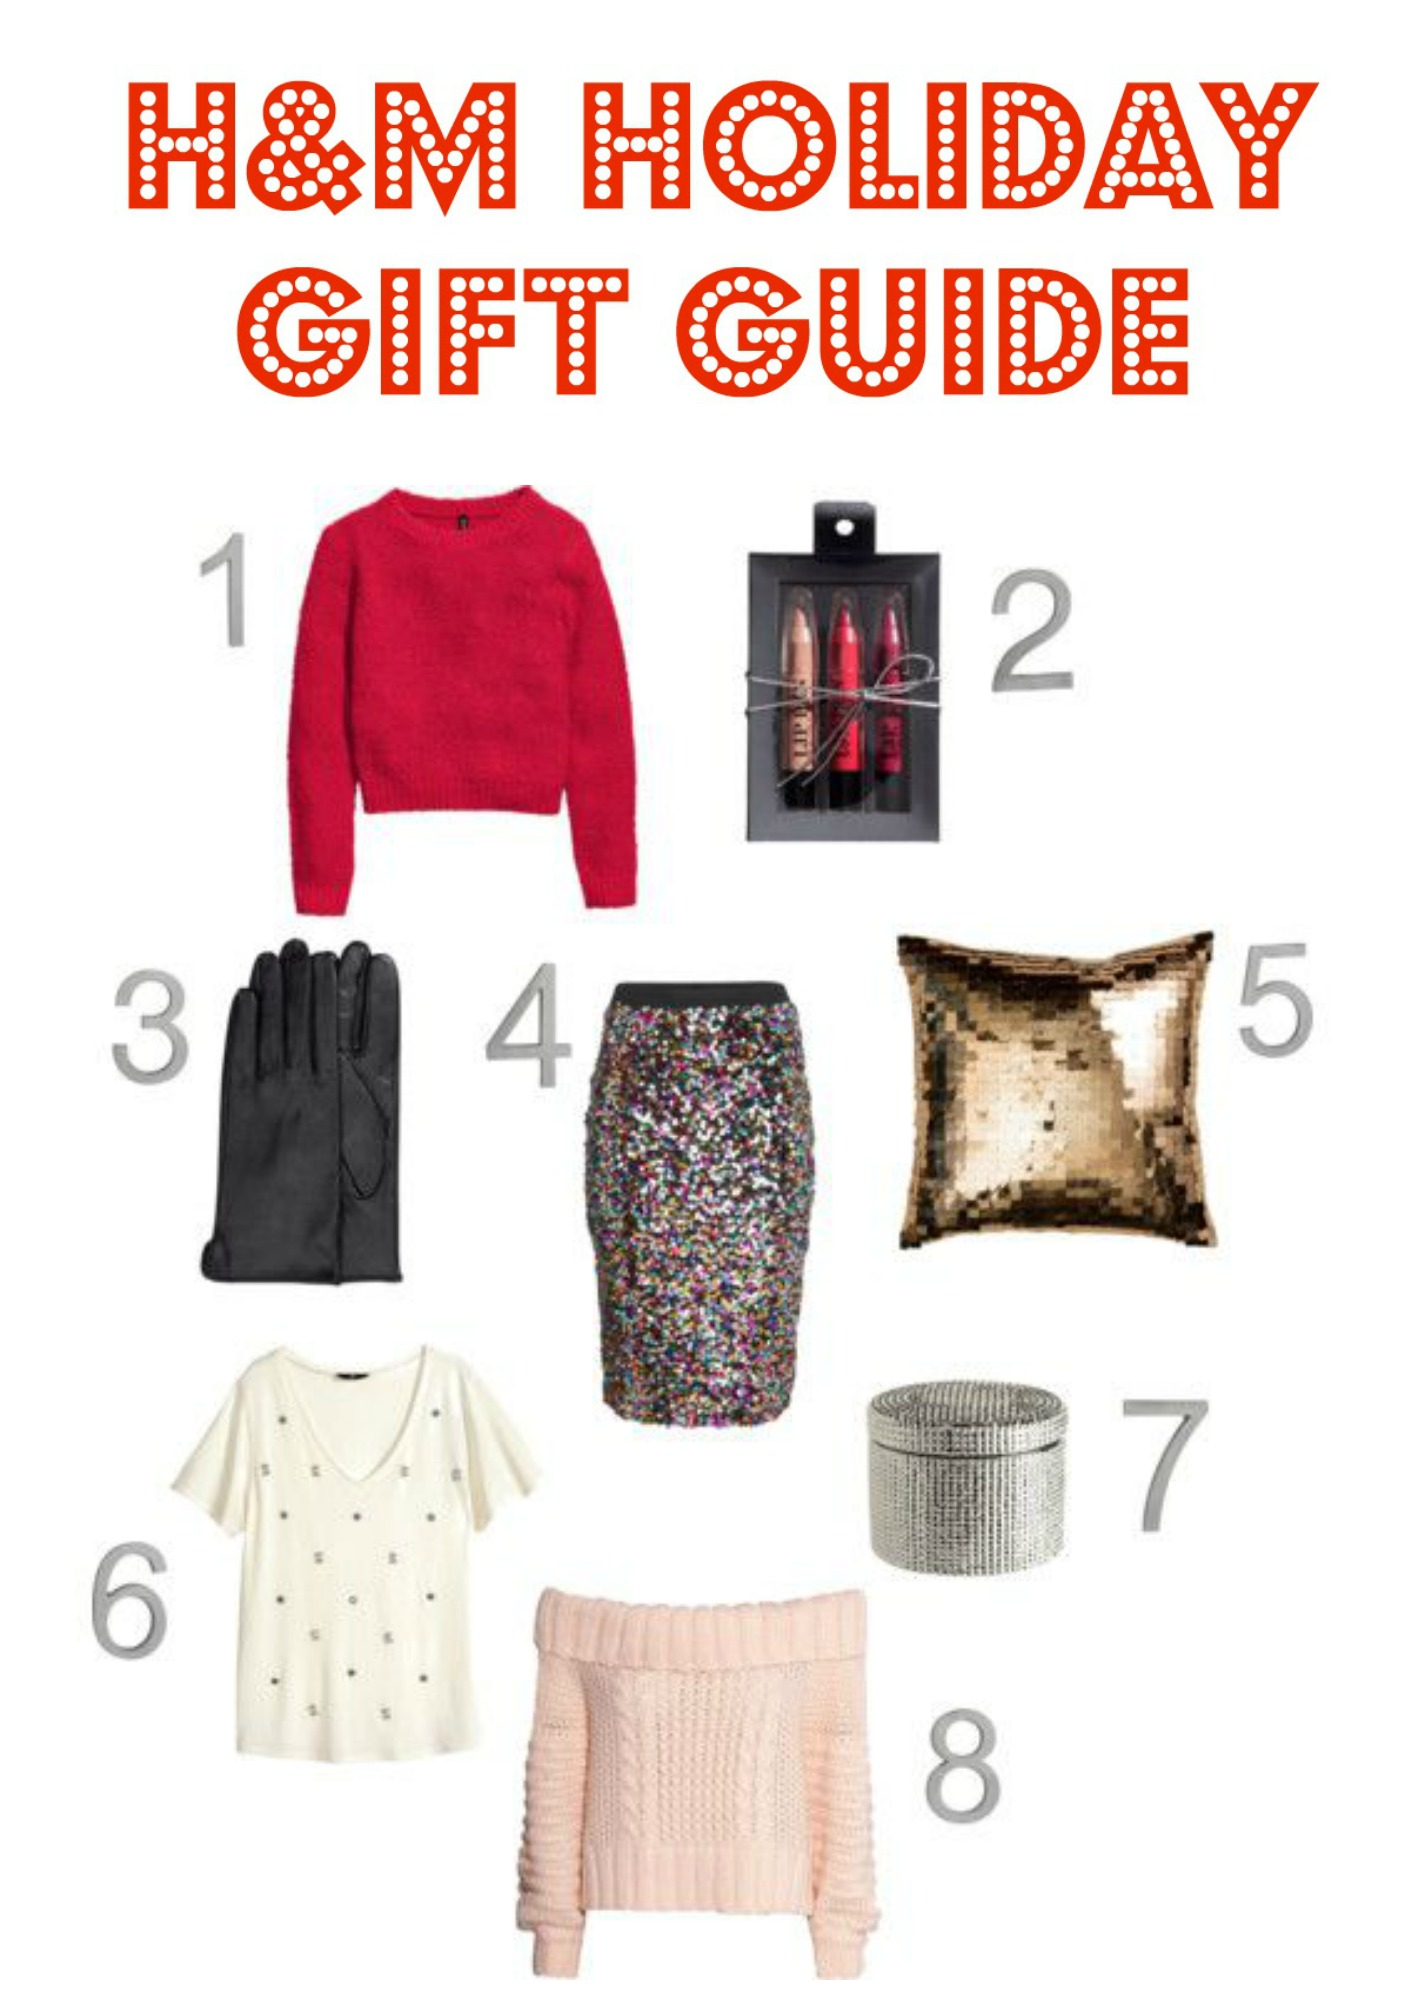 H&M Holiday Gift Guide 2014